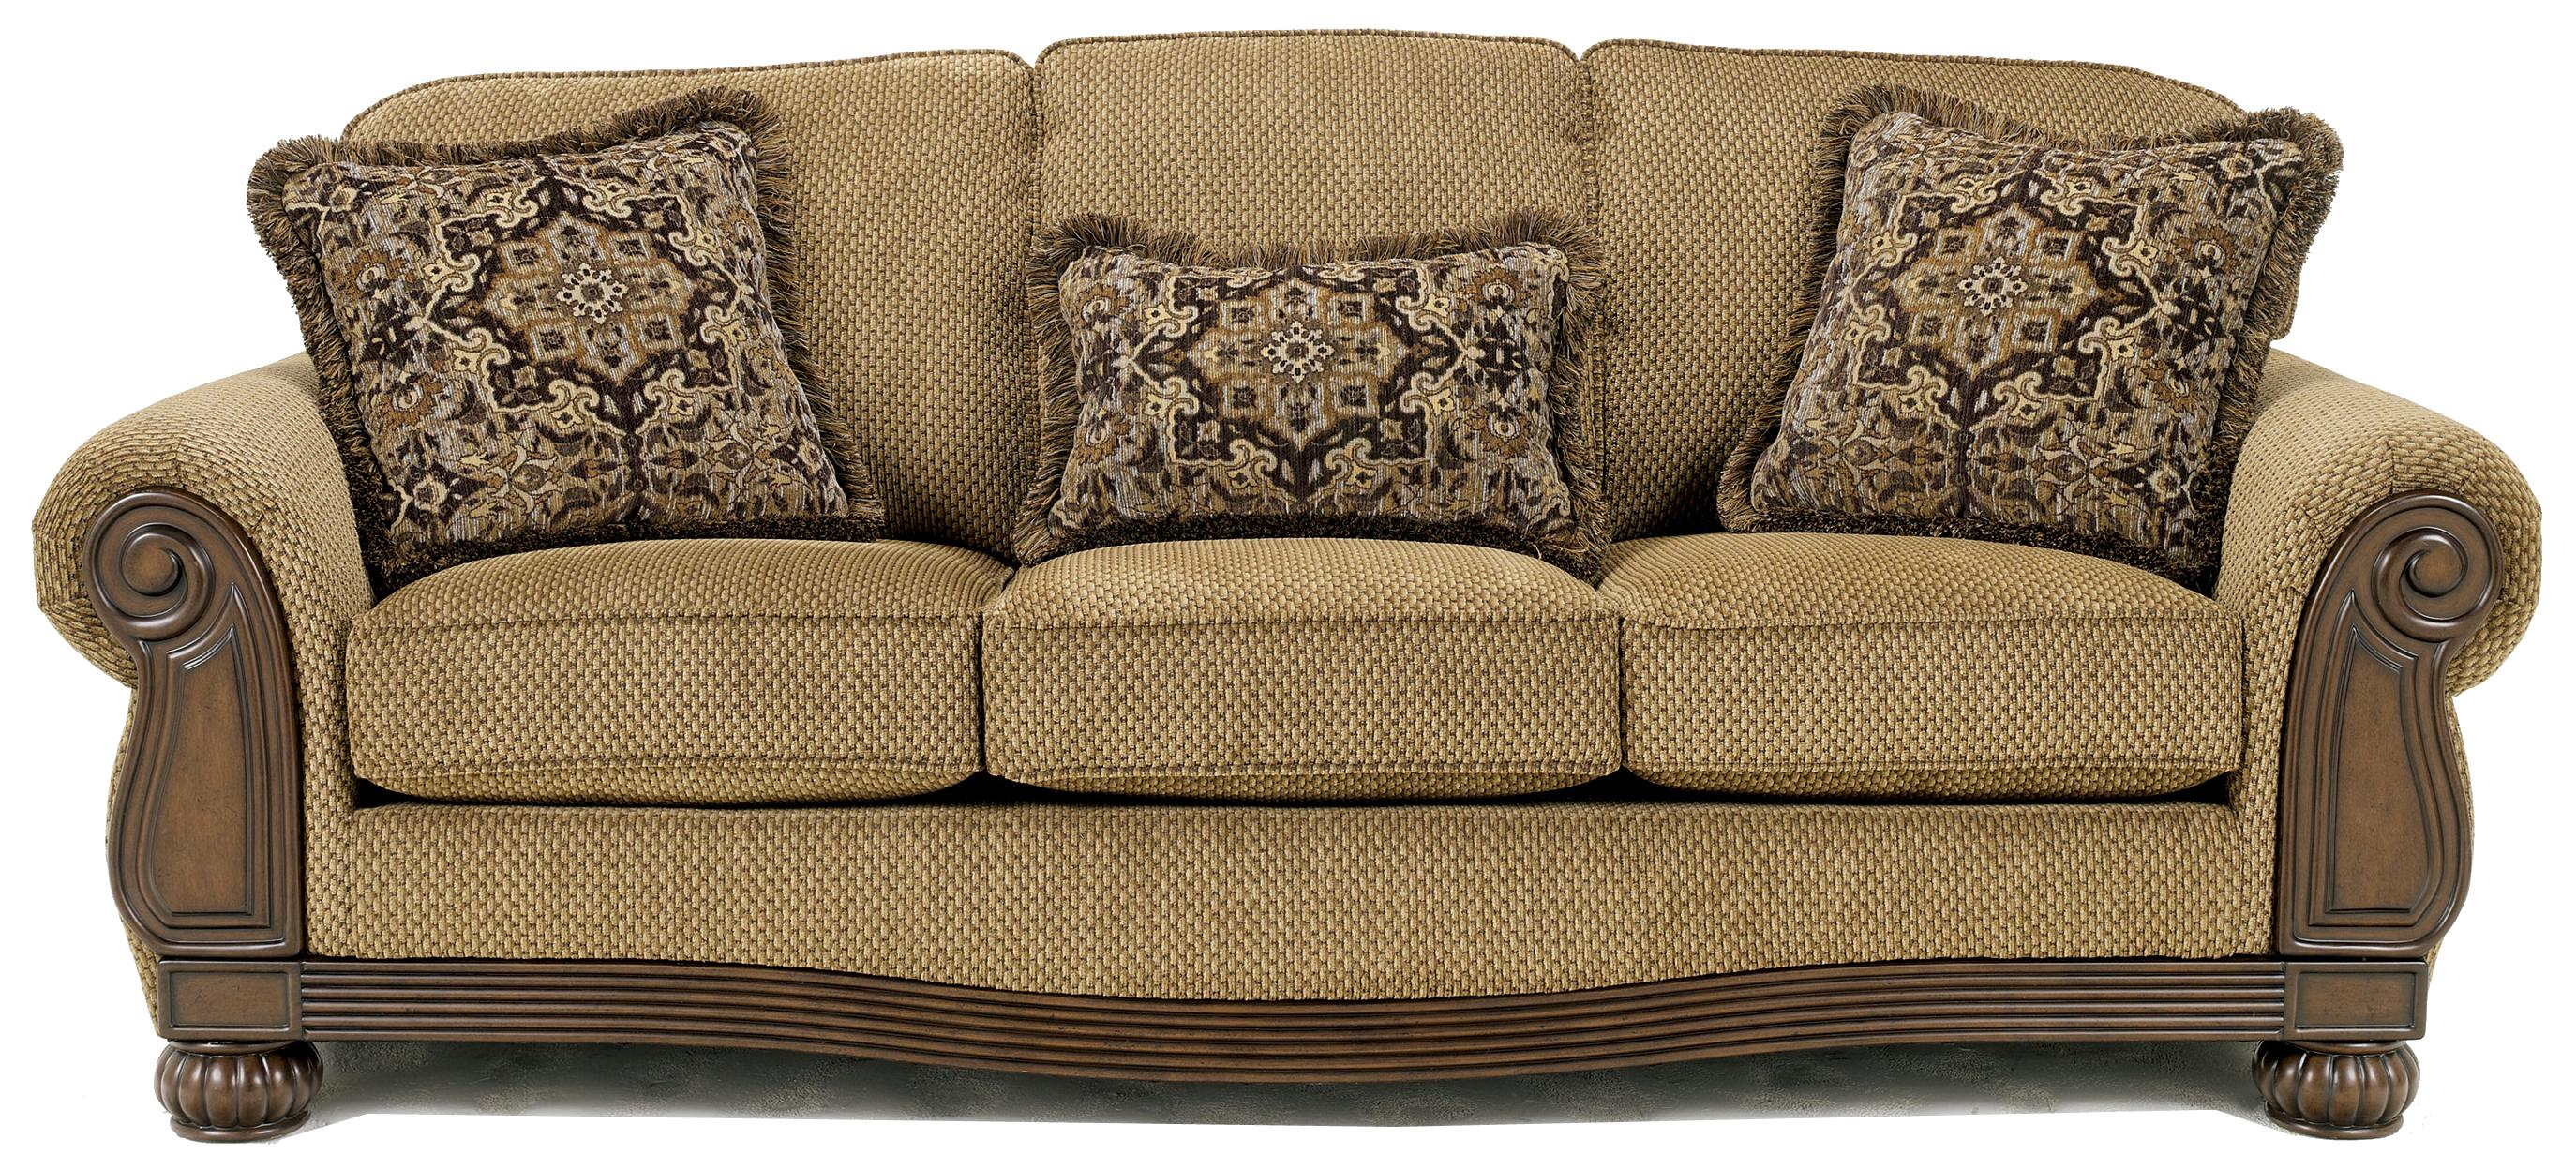 Signature Design by Ashley Lynnwood - Amber Sofa - Item Number: 6850038